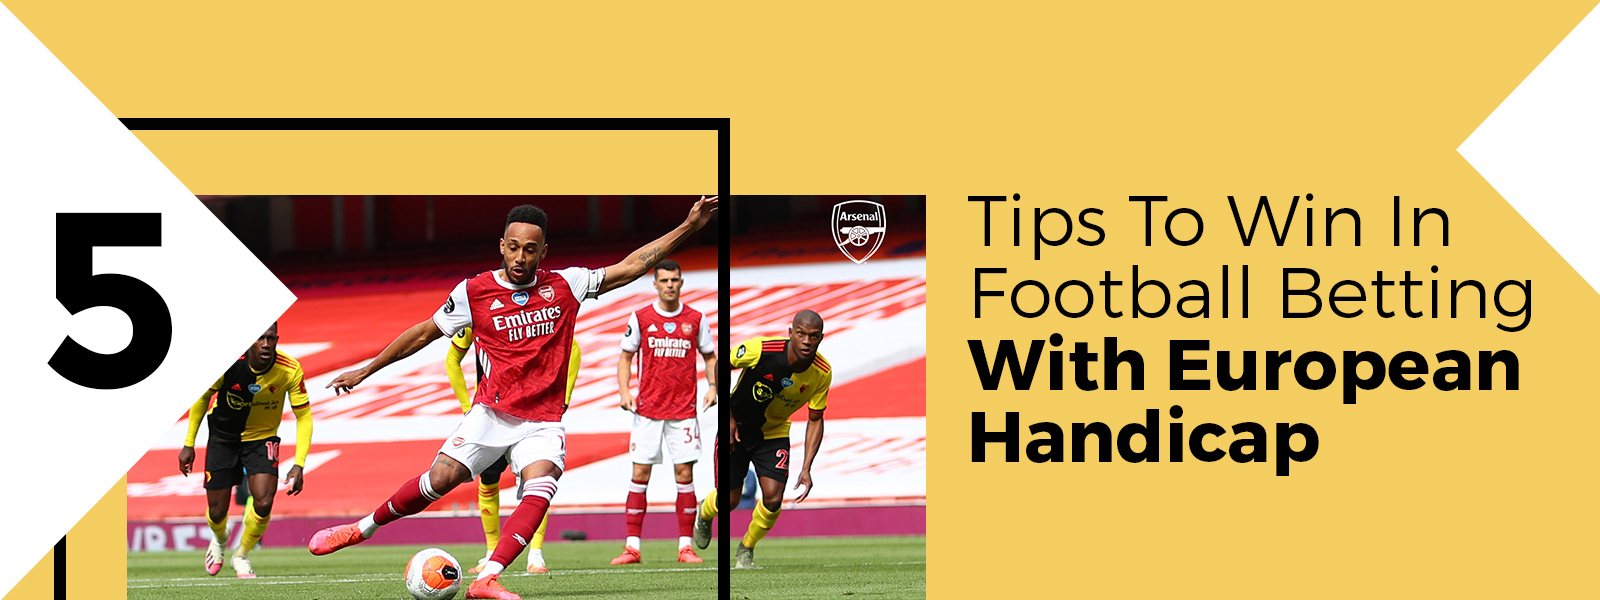 5 Tips To Win In Football Betting With European Handicap